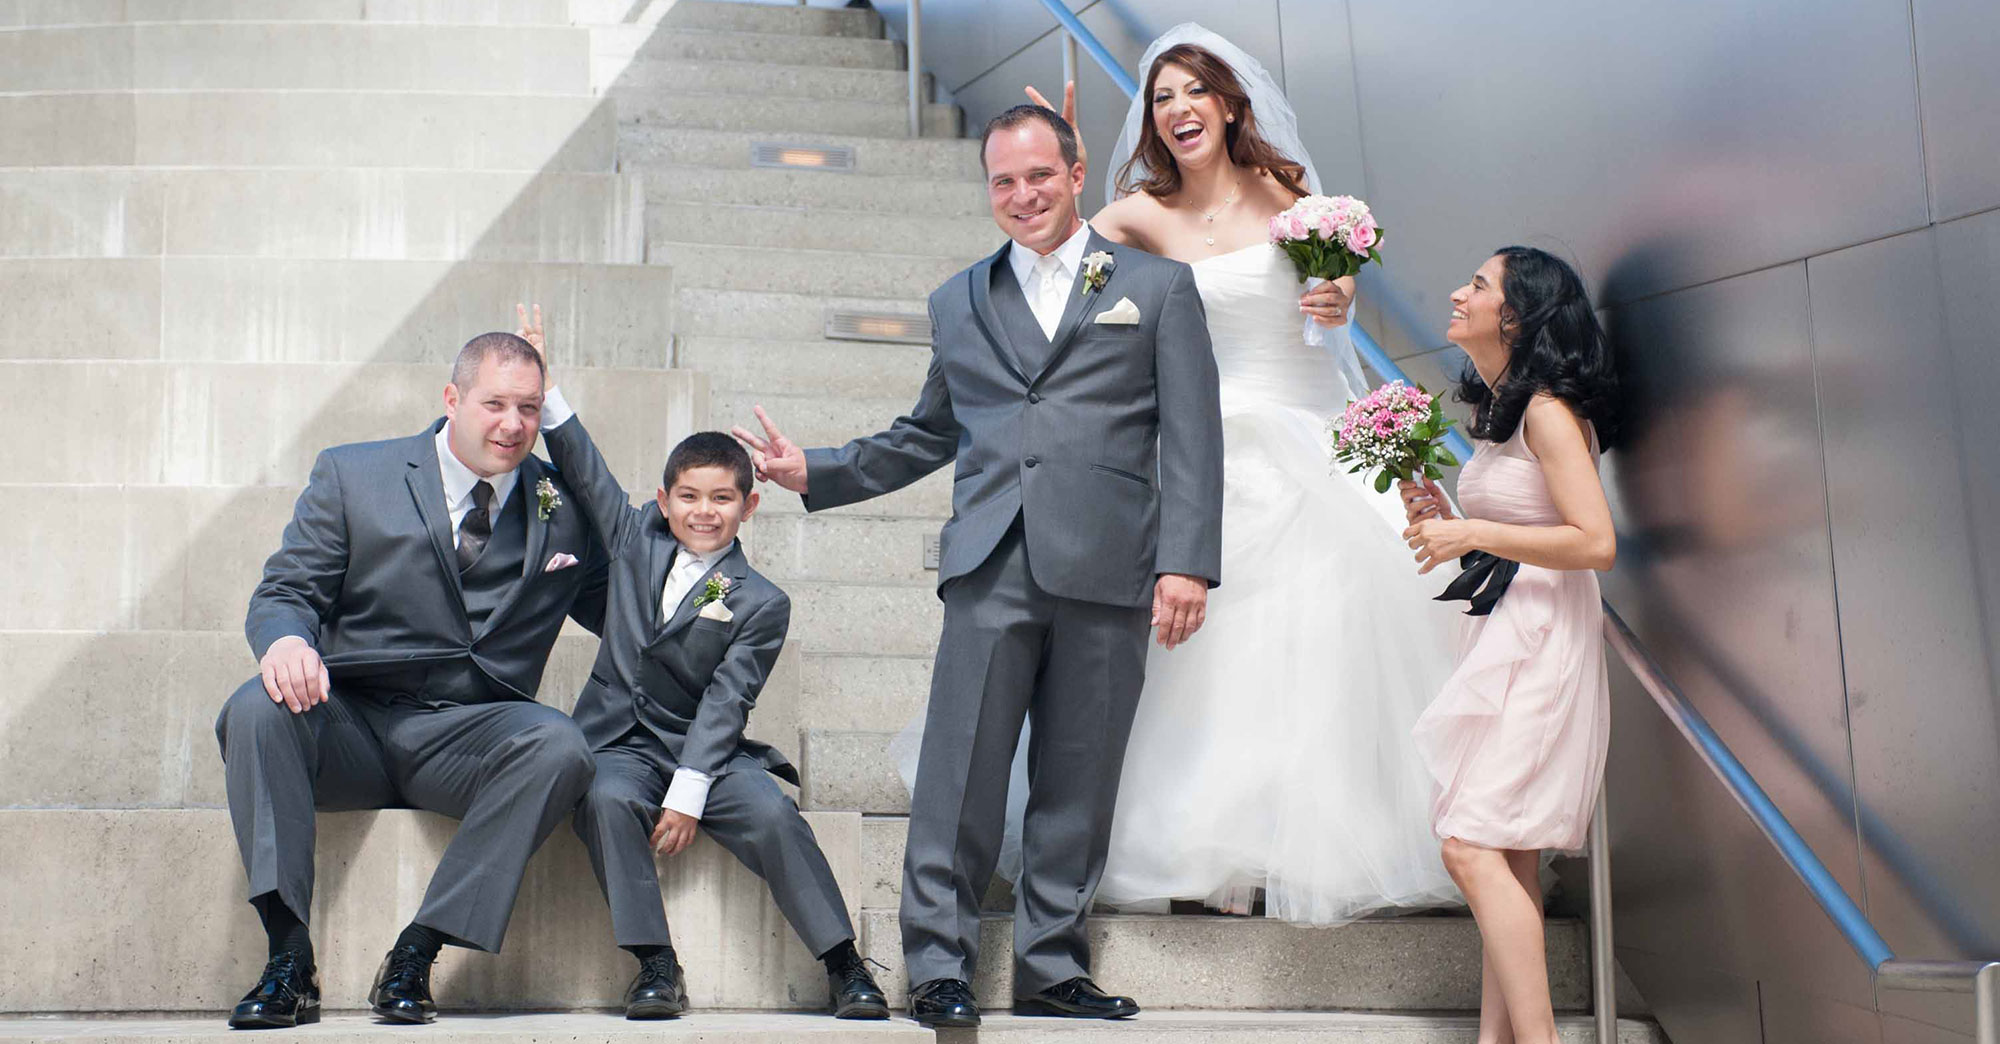 Jen & Tim's Downtown L.A. Wedding featured slider image